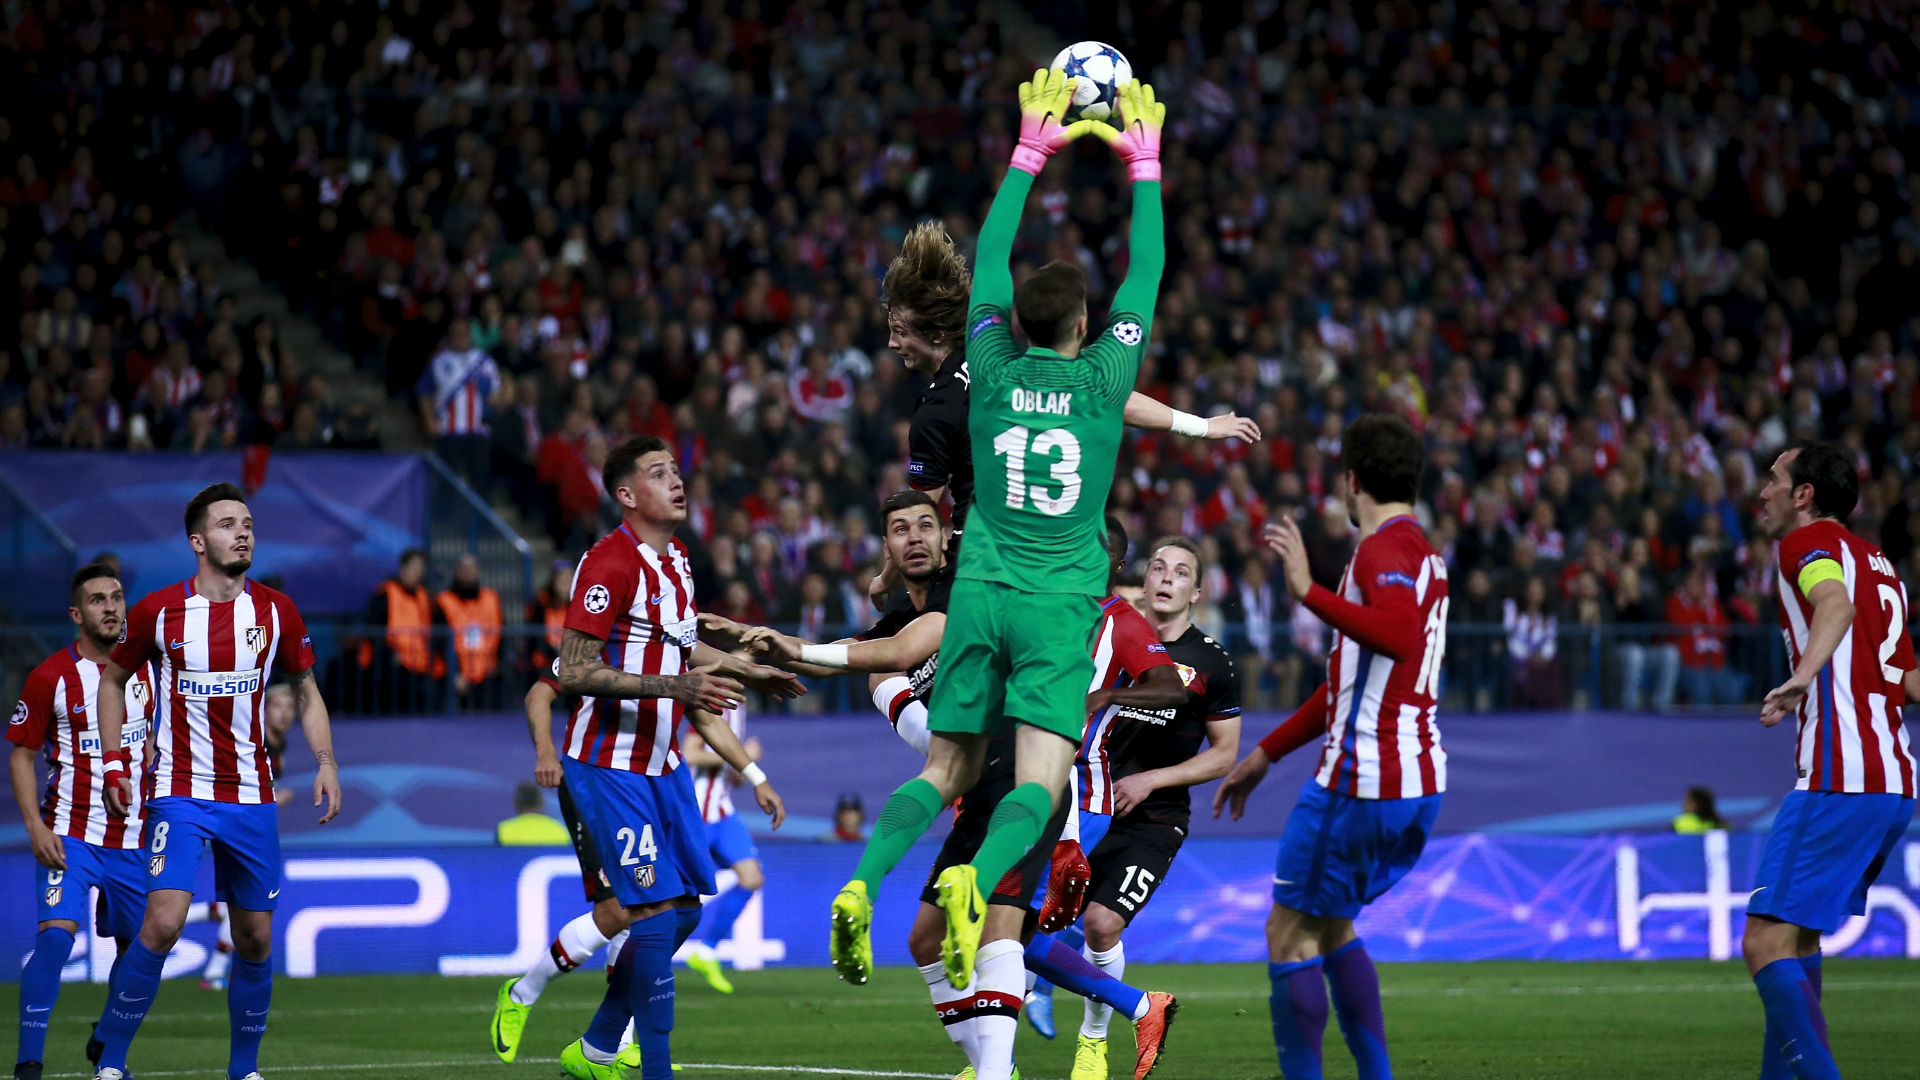 ATLETICO MADRID BAYER LEVERKUSEN JAN OBLAK CHAMPIONS LEAGUE 15032016